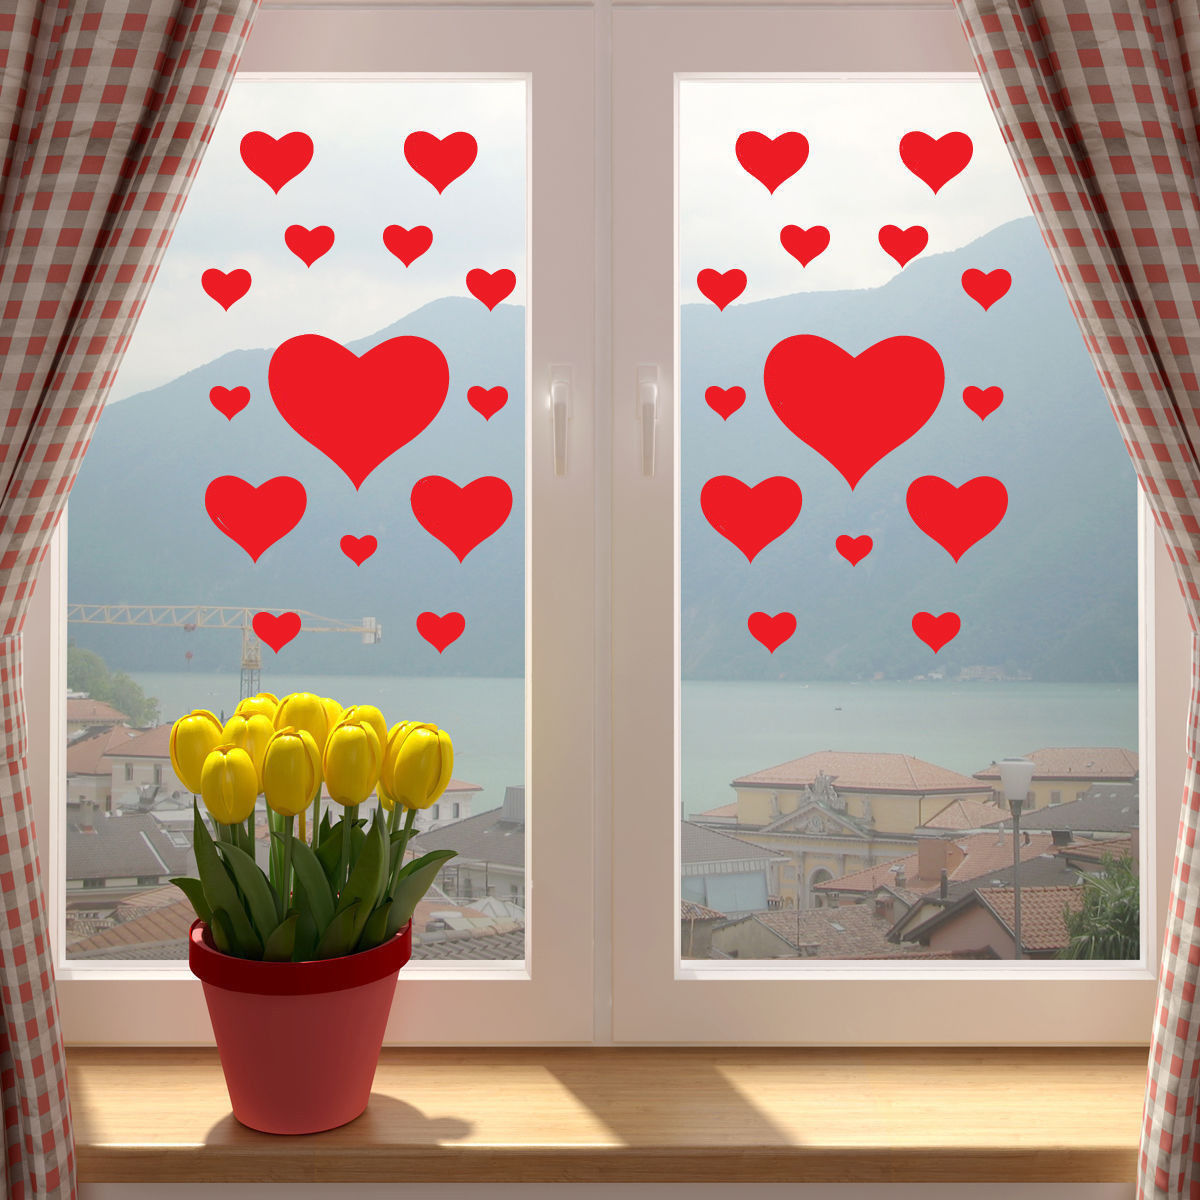 Valentines Day Doves in Love Heart Wall Window Sticker Decal Romantic Decor